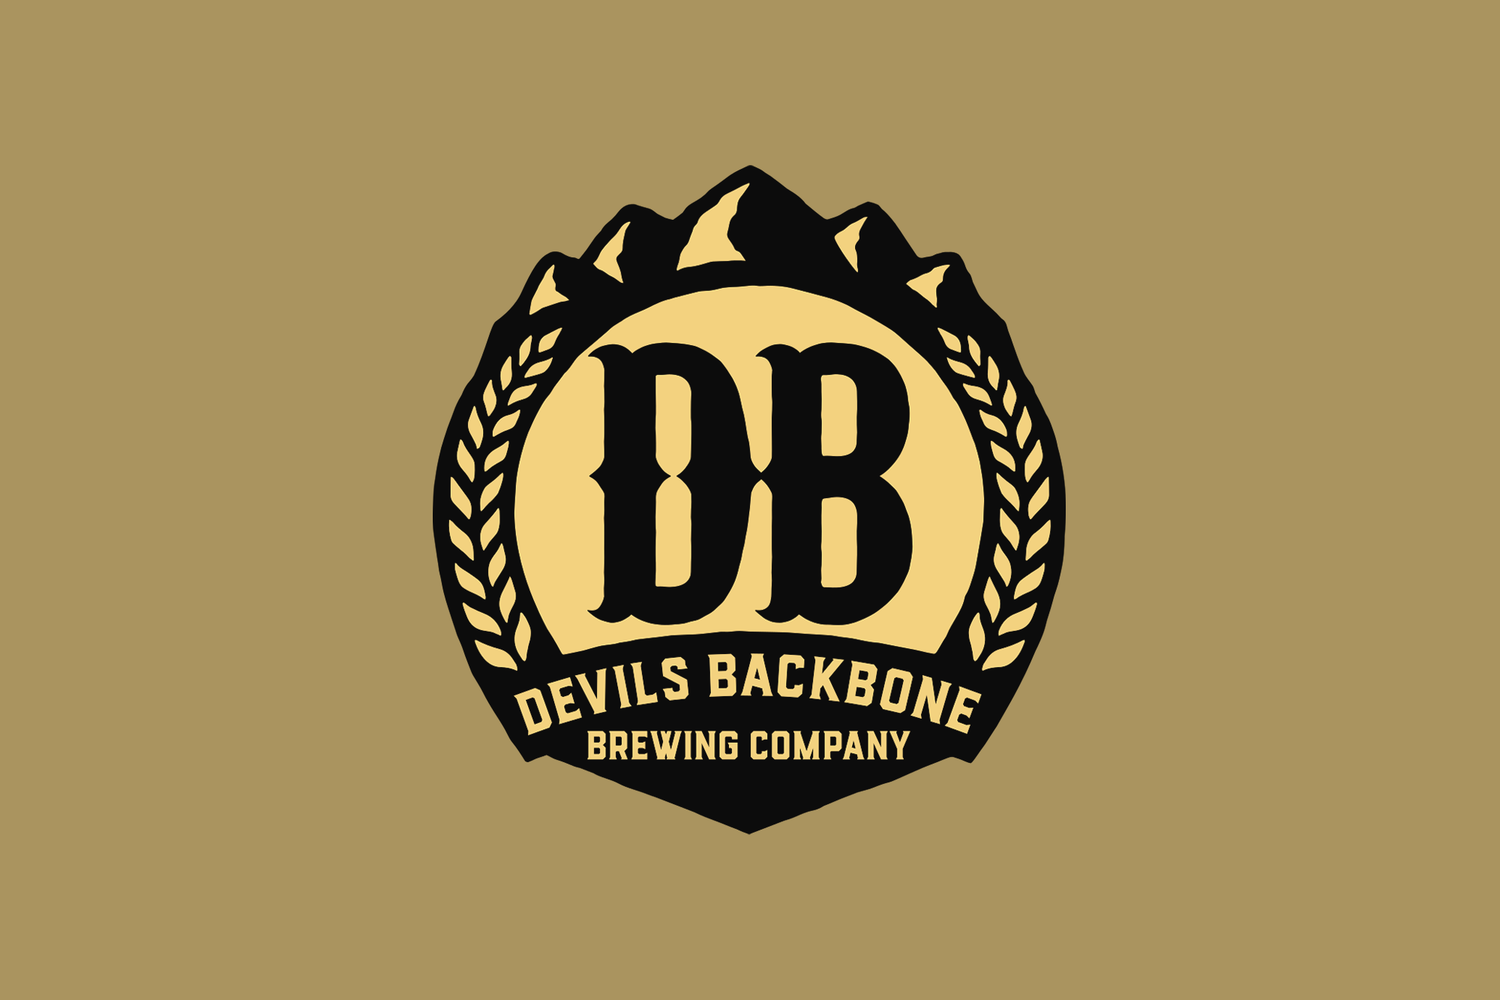 TheHopReview-DevilsBackbone-Logo-New.png